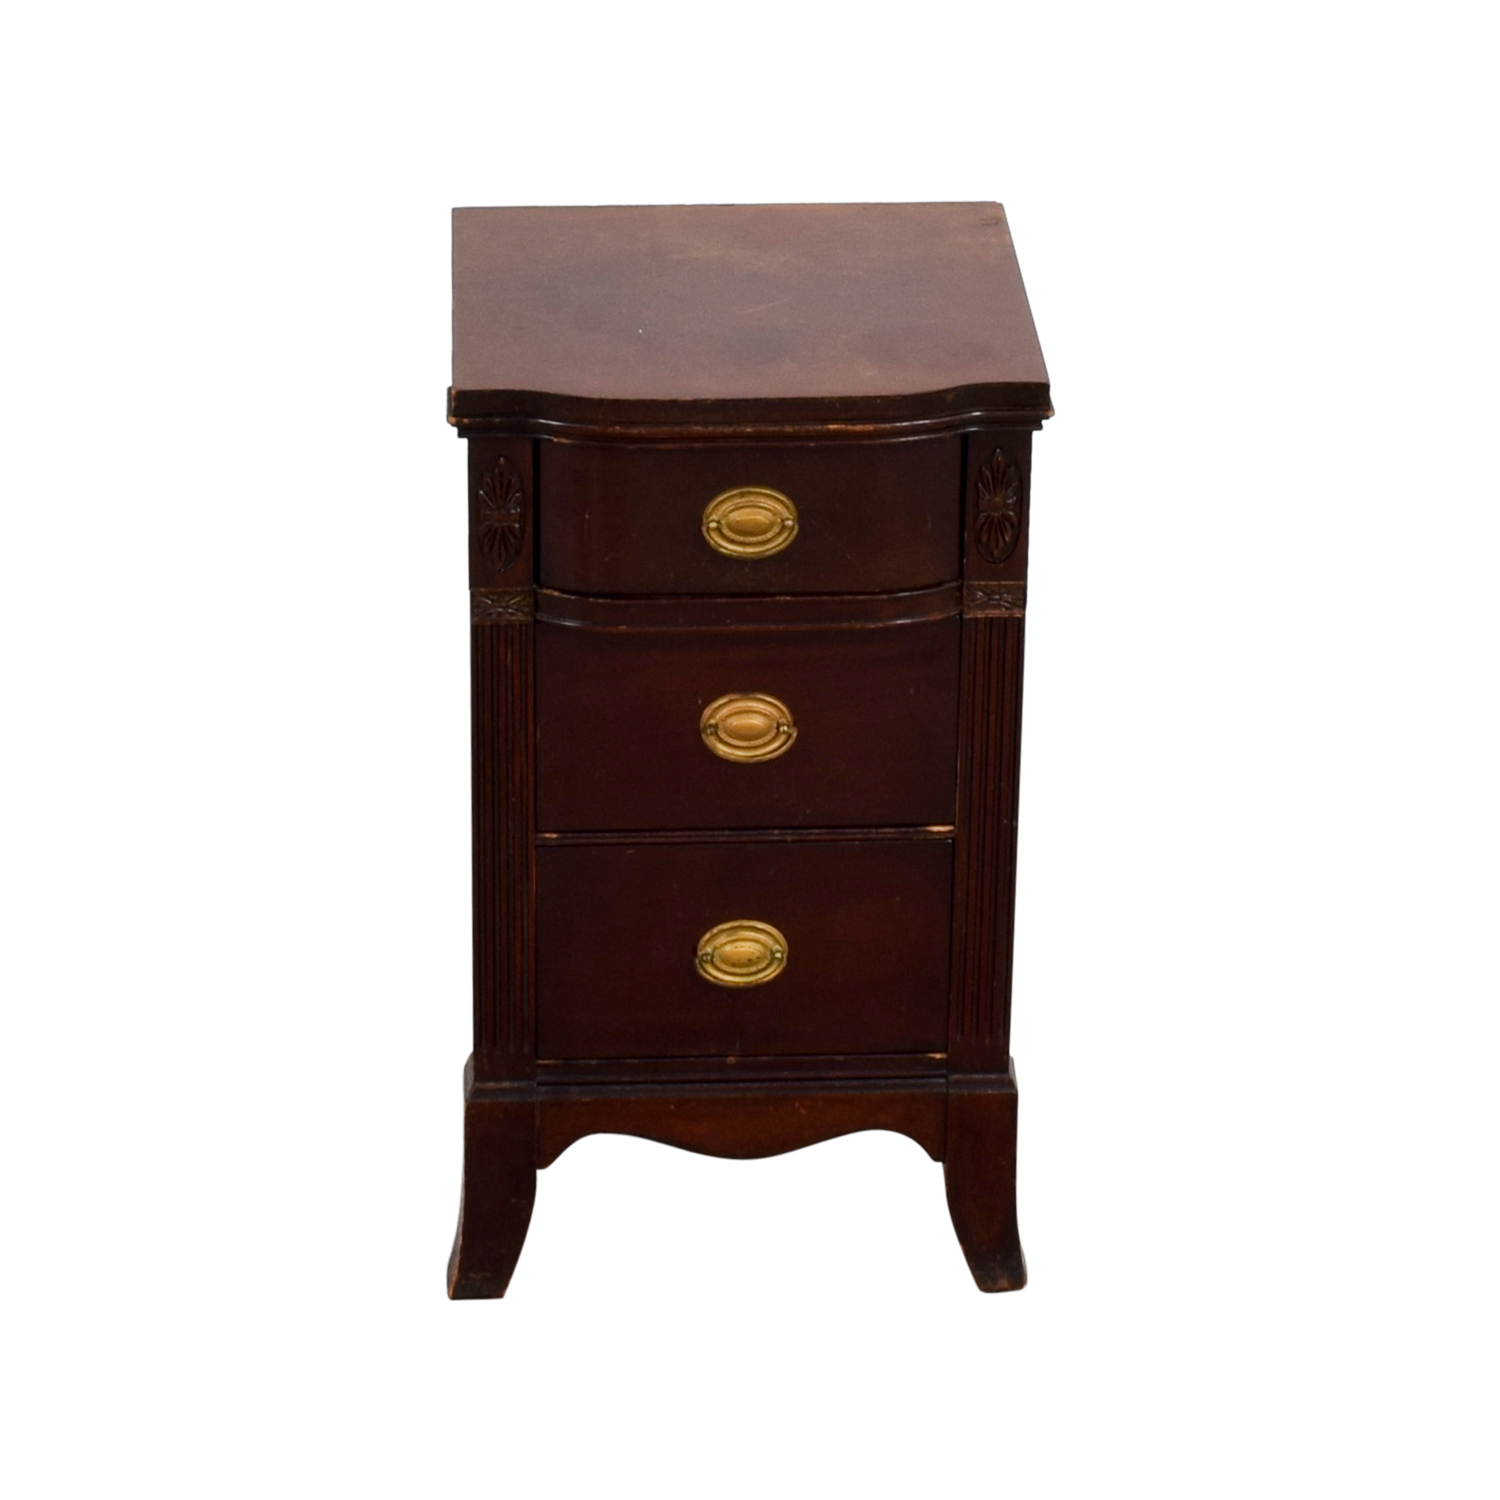 Wood with Gold Accent Nightstand